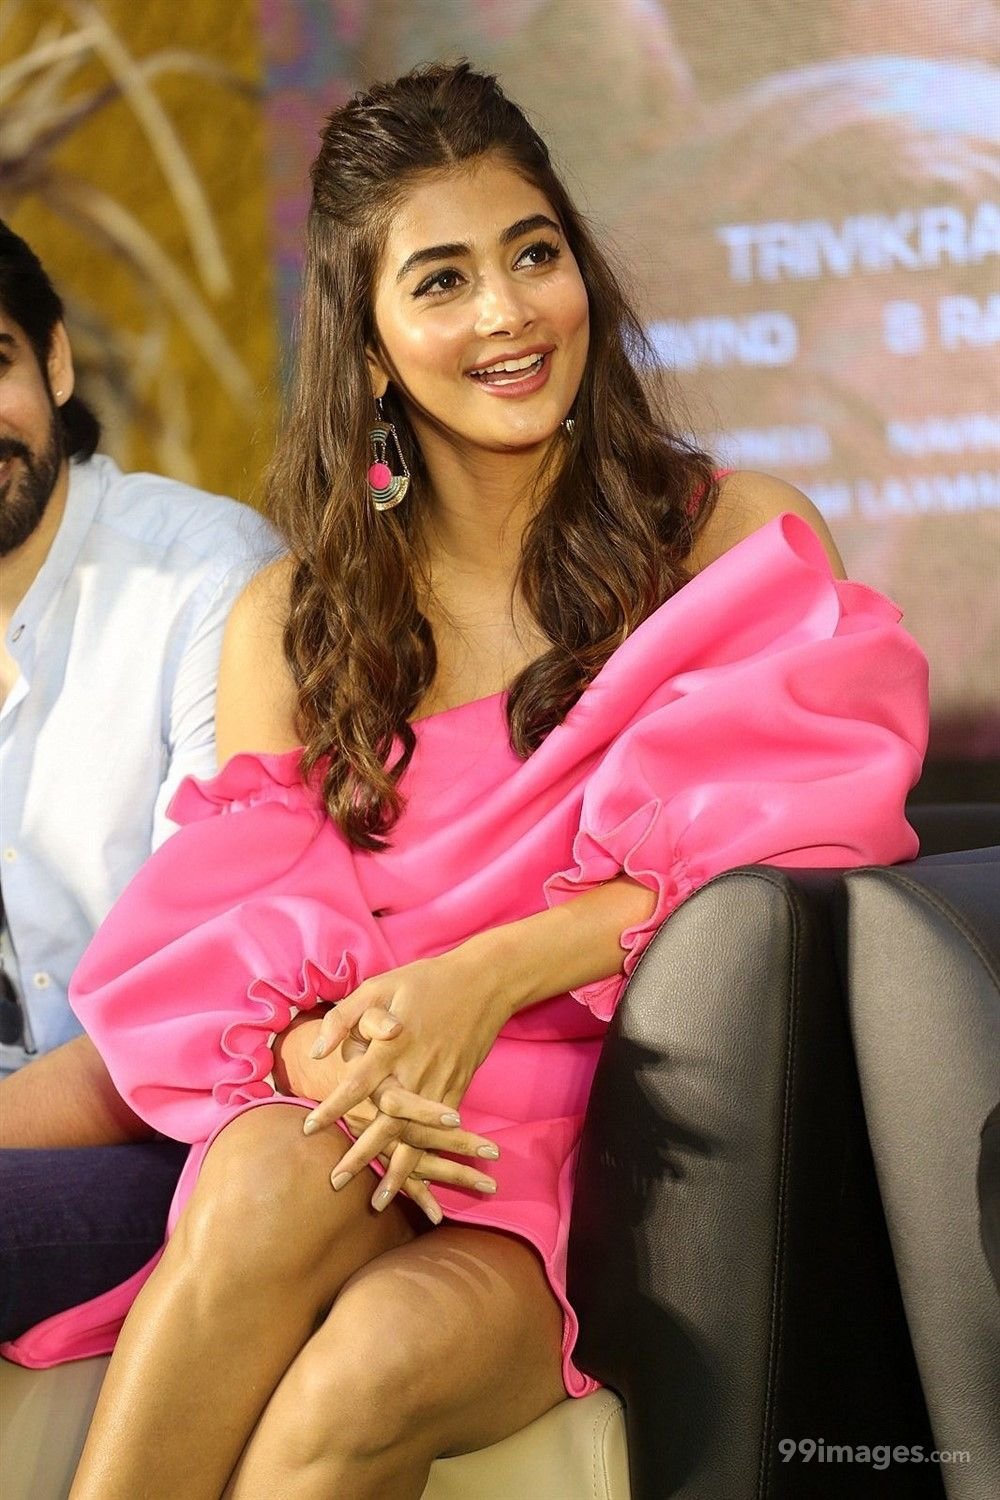 Pooja Hegde Beautiful Photos & Mobile Wallpapers HD (Android/iPhone) (1080p) (287928) - Pooja Hegde